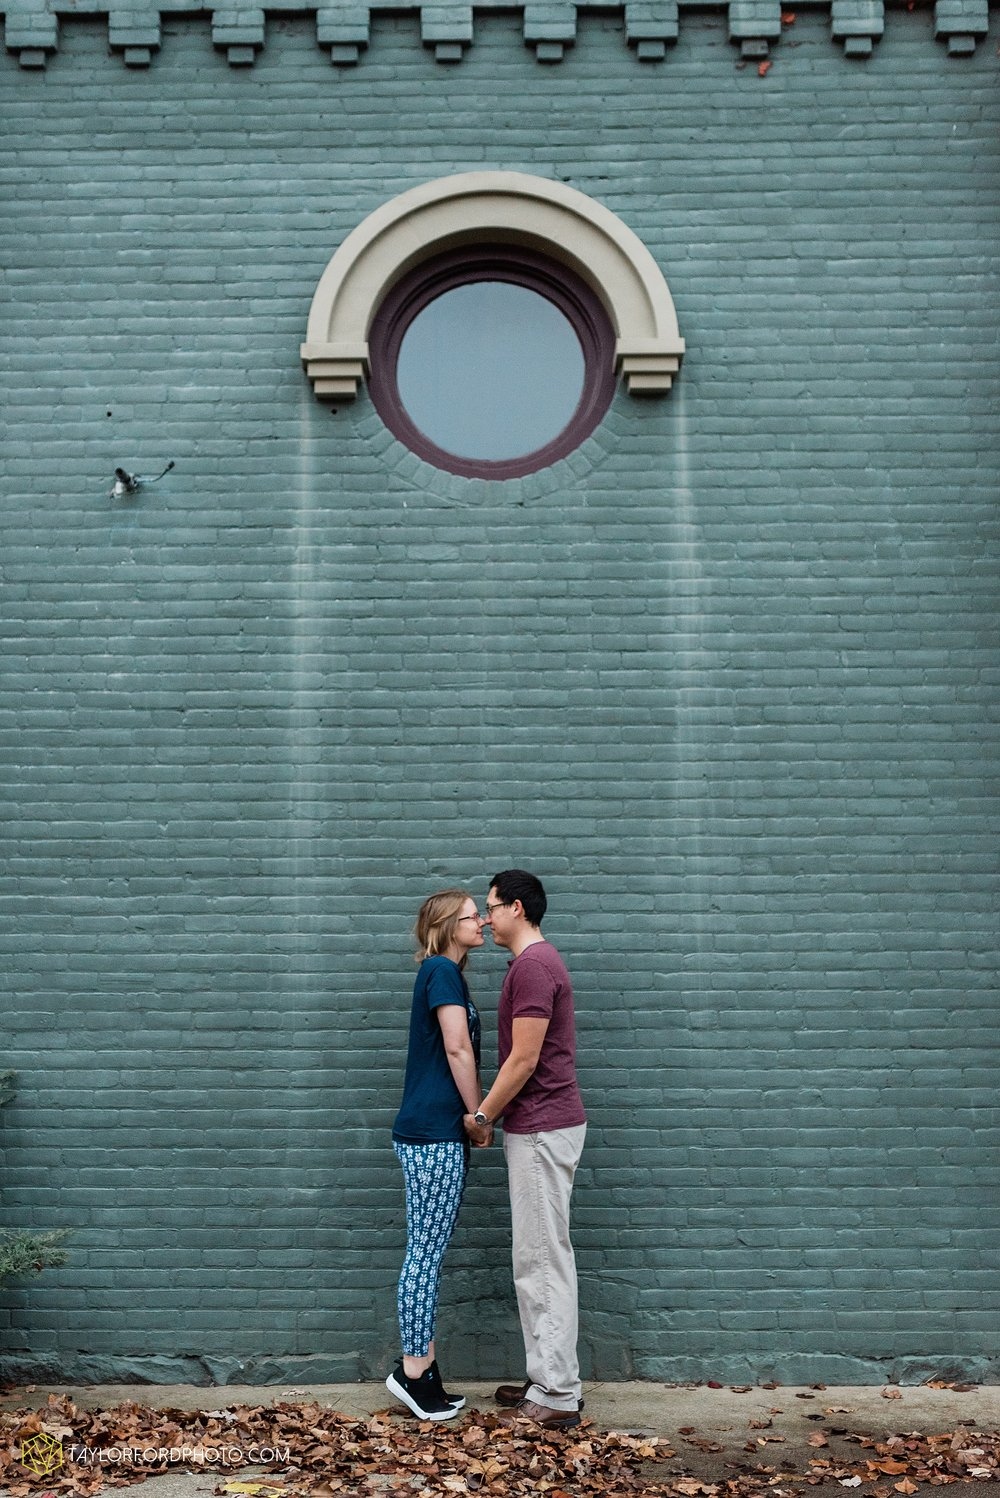 at-home-fidler-pond-park-downtown-goshen-indiana-engagement-photography-taylor-ford-hirschy-photographer_2006.jpg